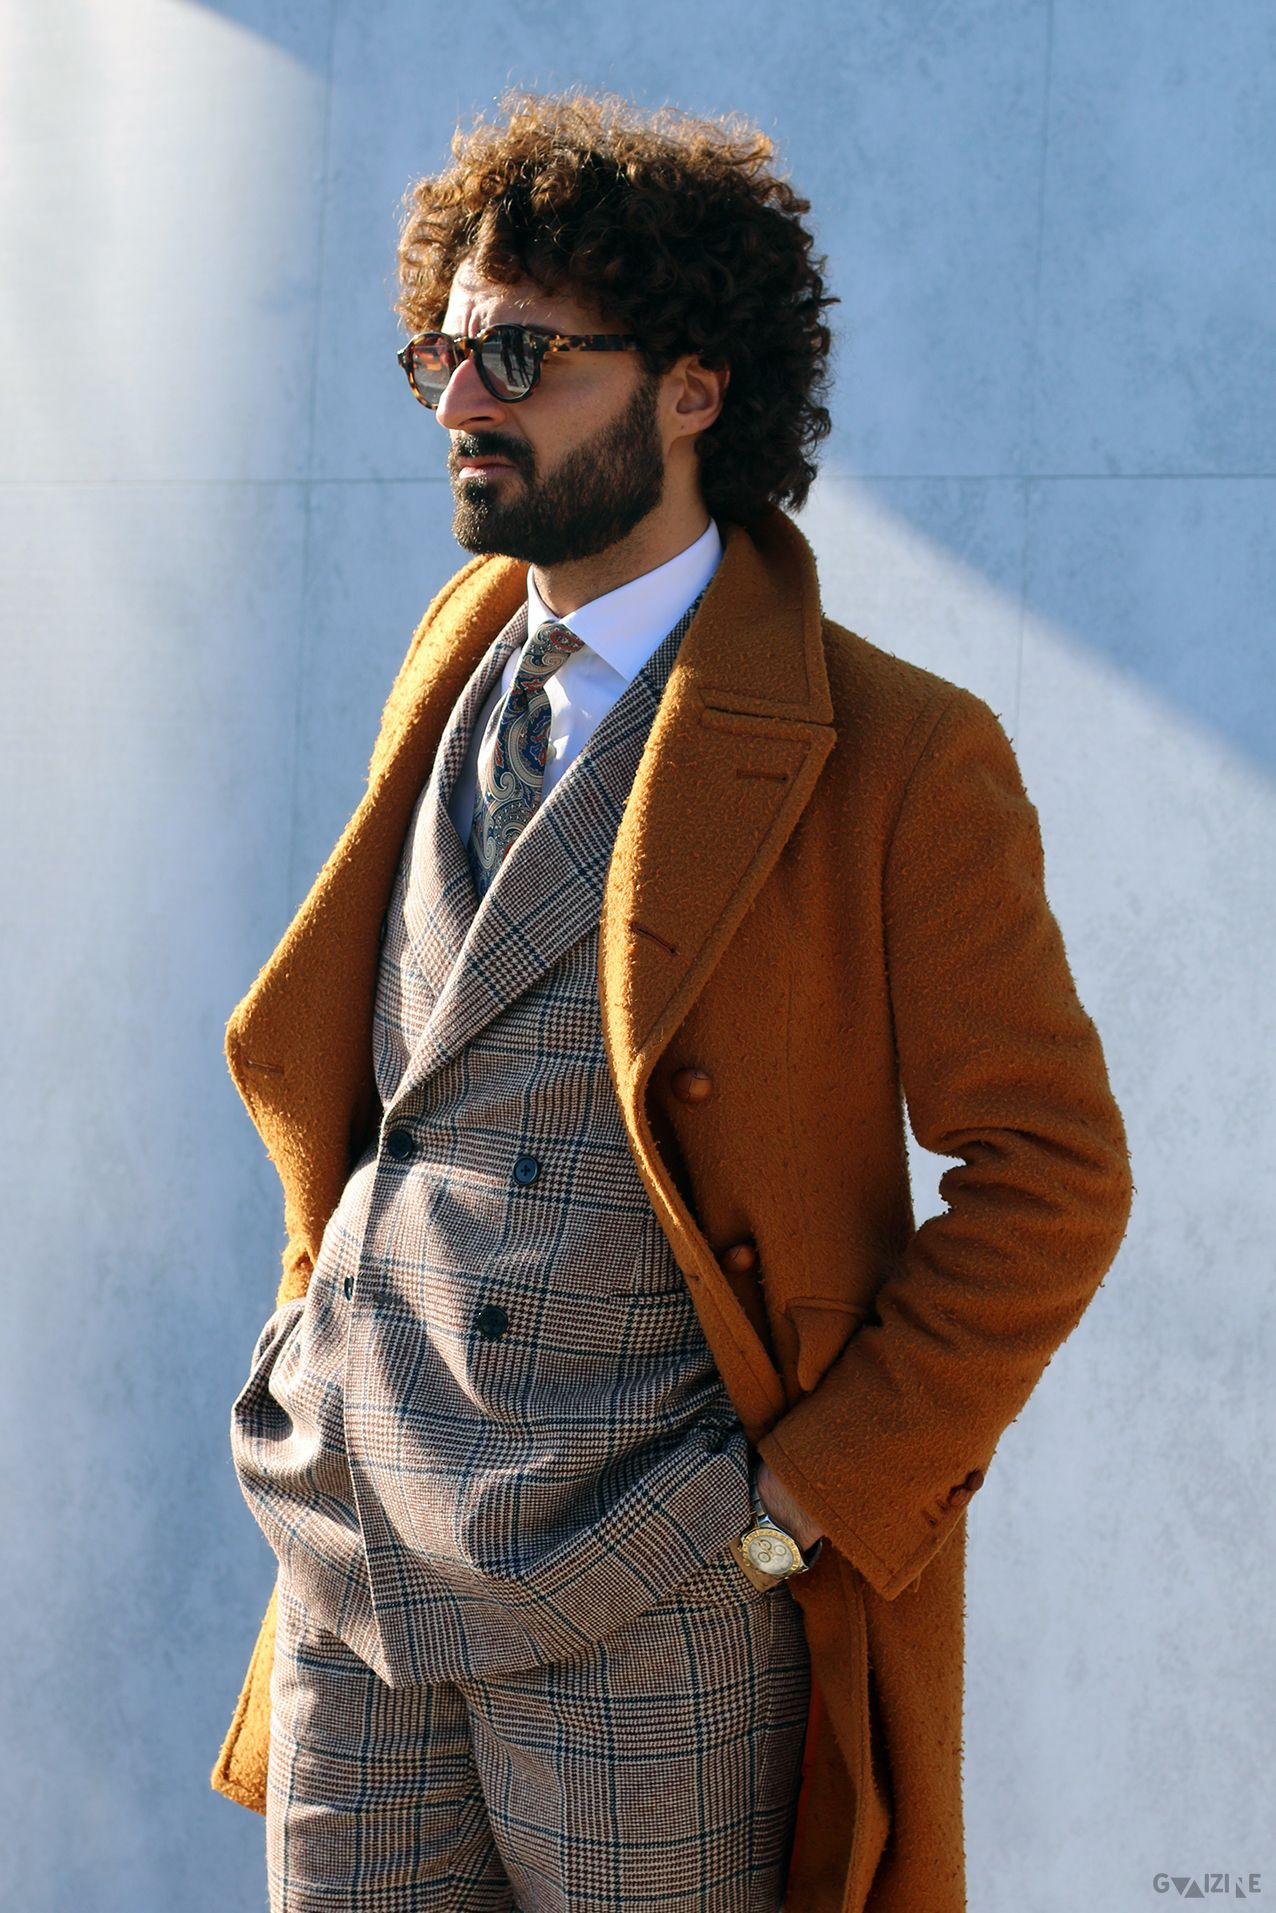 guaizine: Guaizine ft. #StreetStyle at #PittiUomo89 | #PHOTO by male®